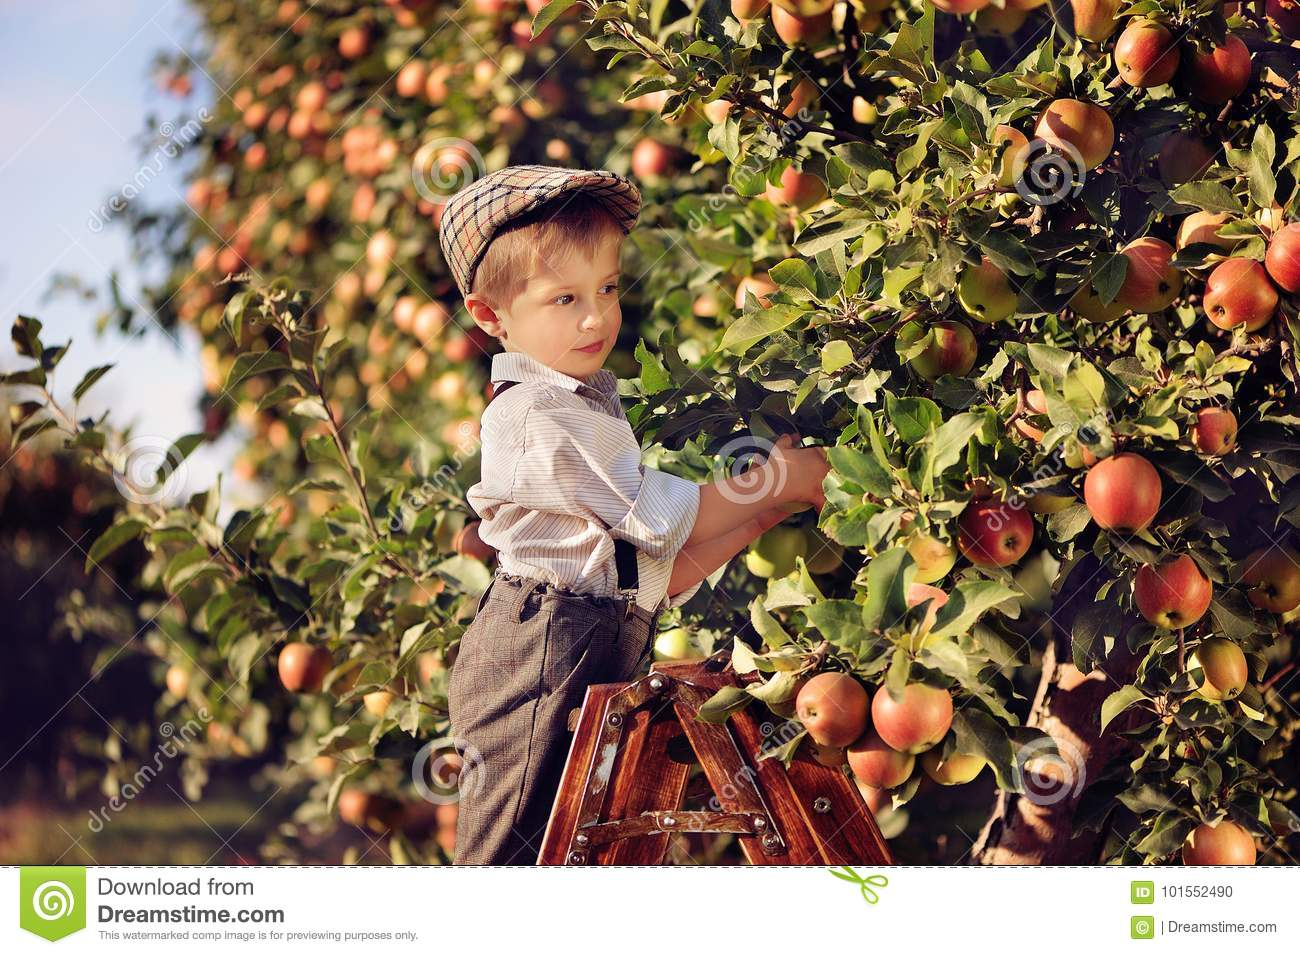 A Boy In An Apple Orchard Stock Photo Image Of Armchair 101552490